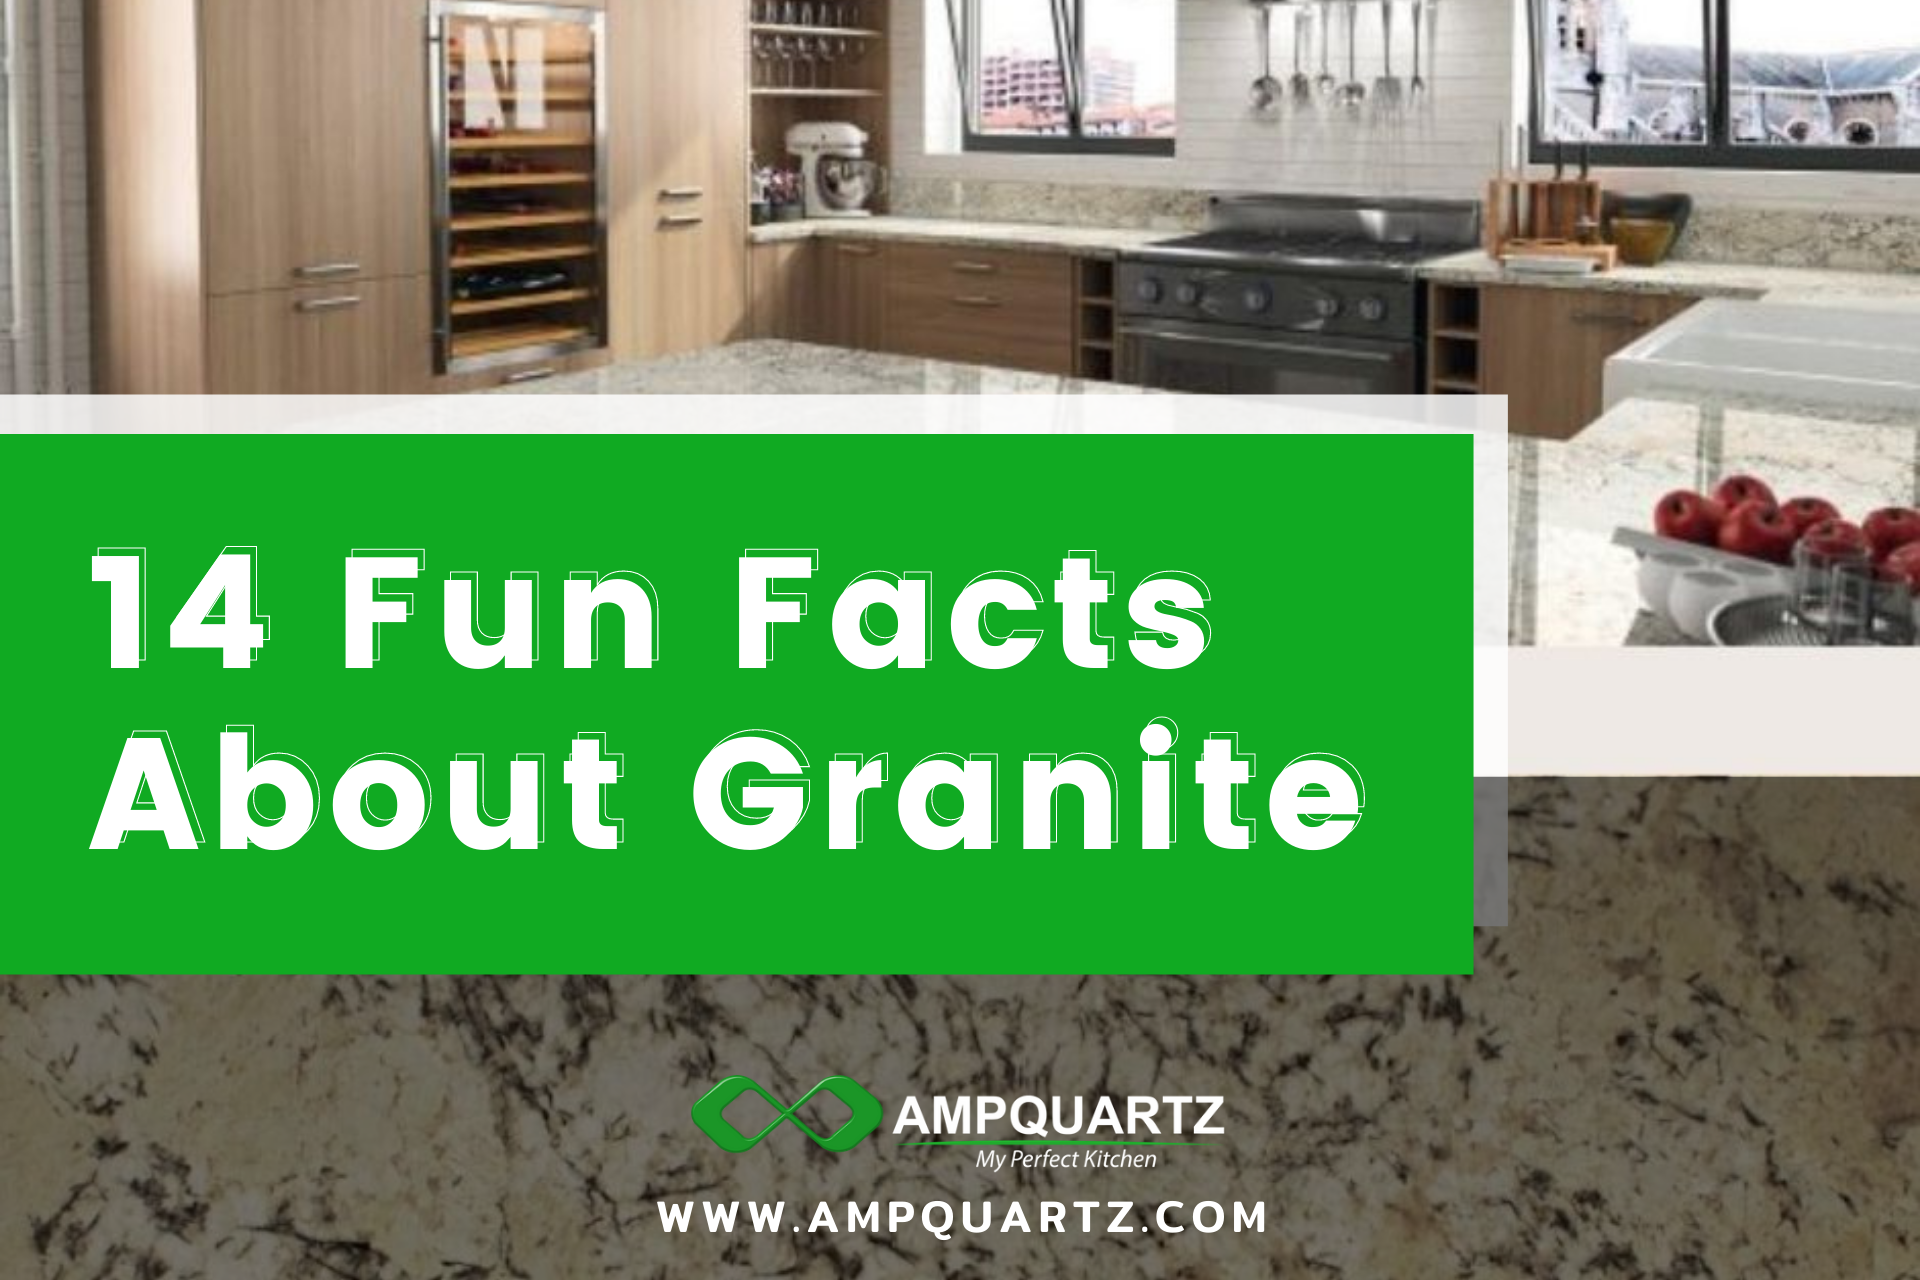 14 Fun Facts About Granite